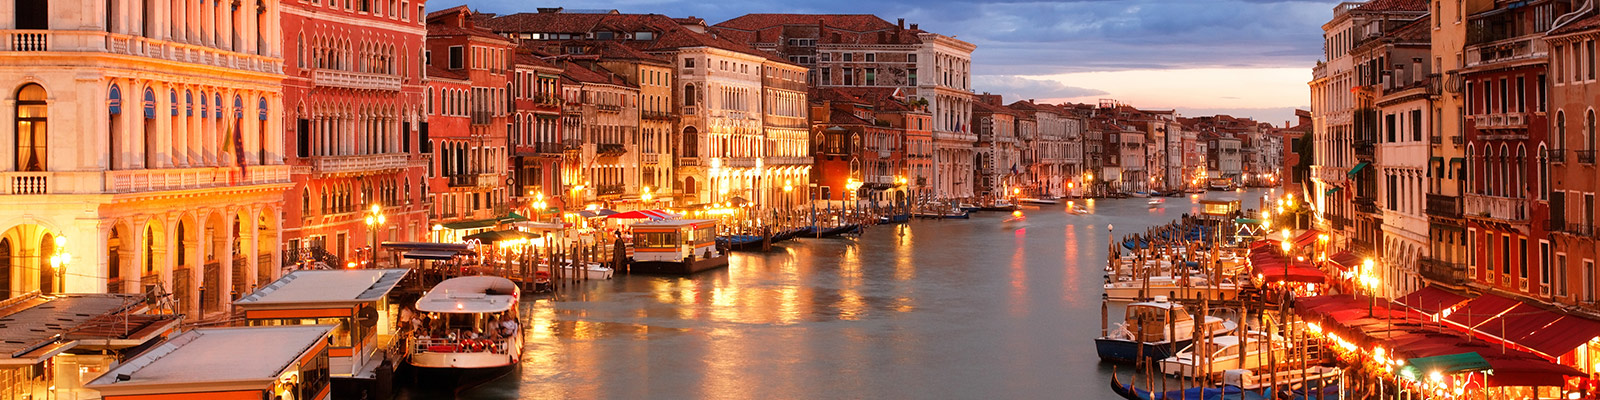 The Venice canals lit up at dusk